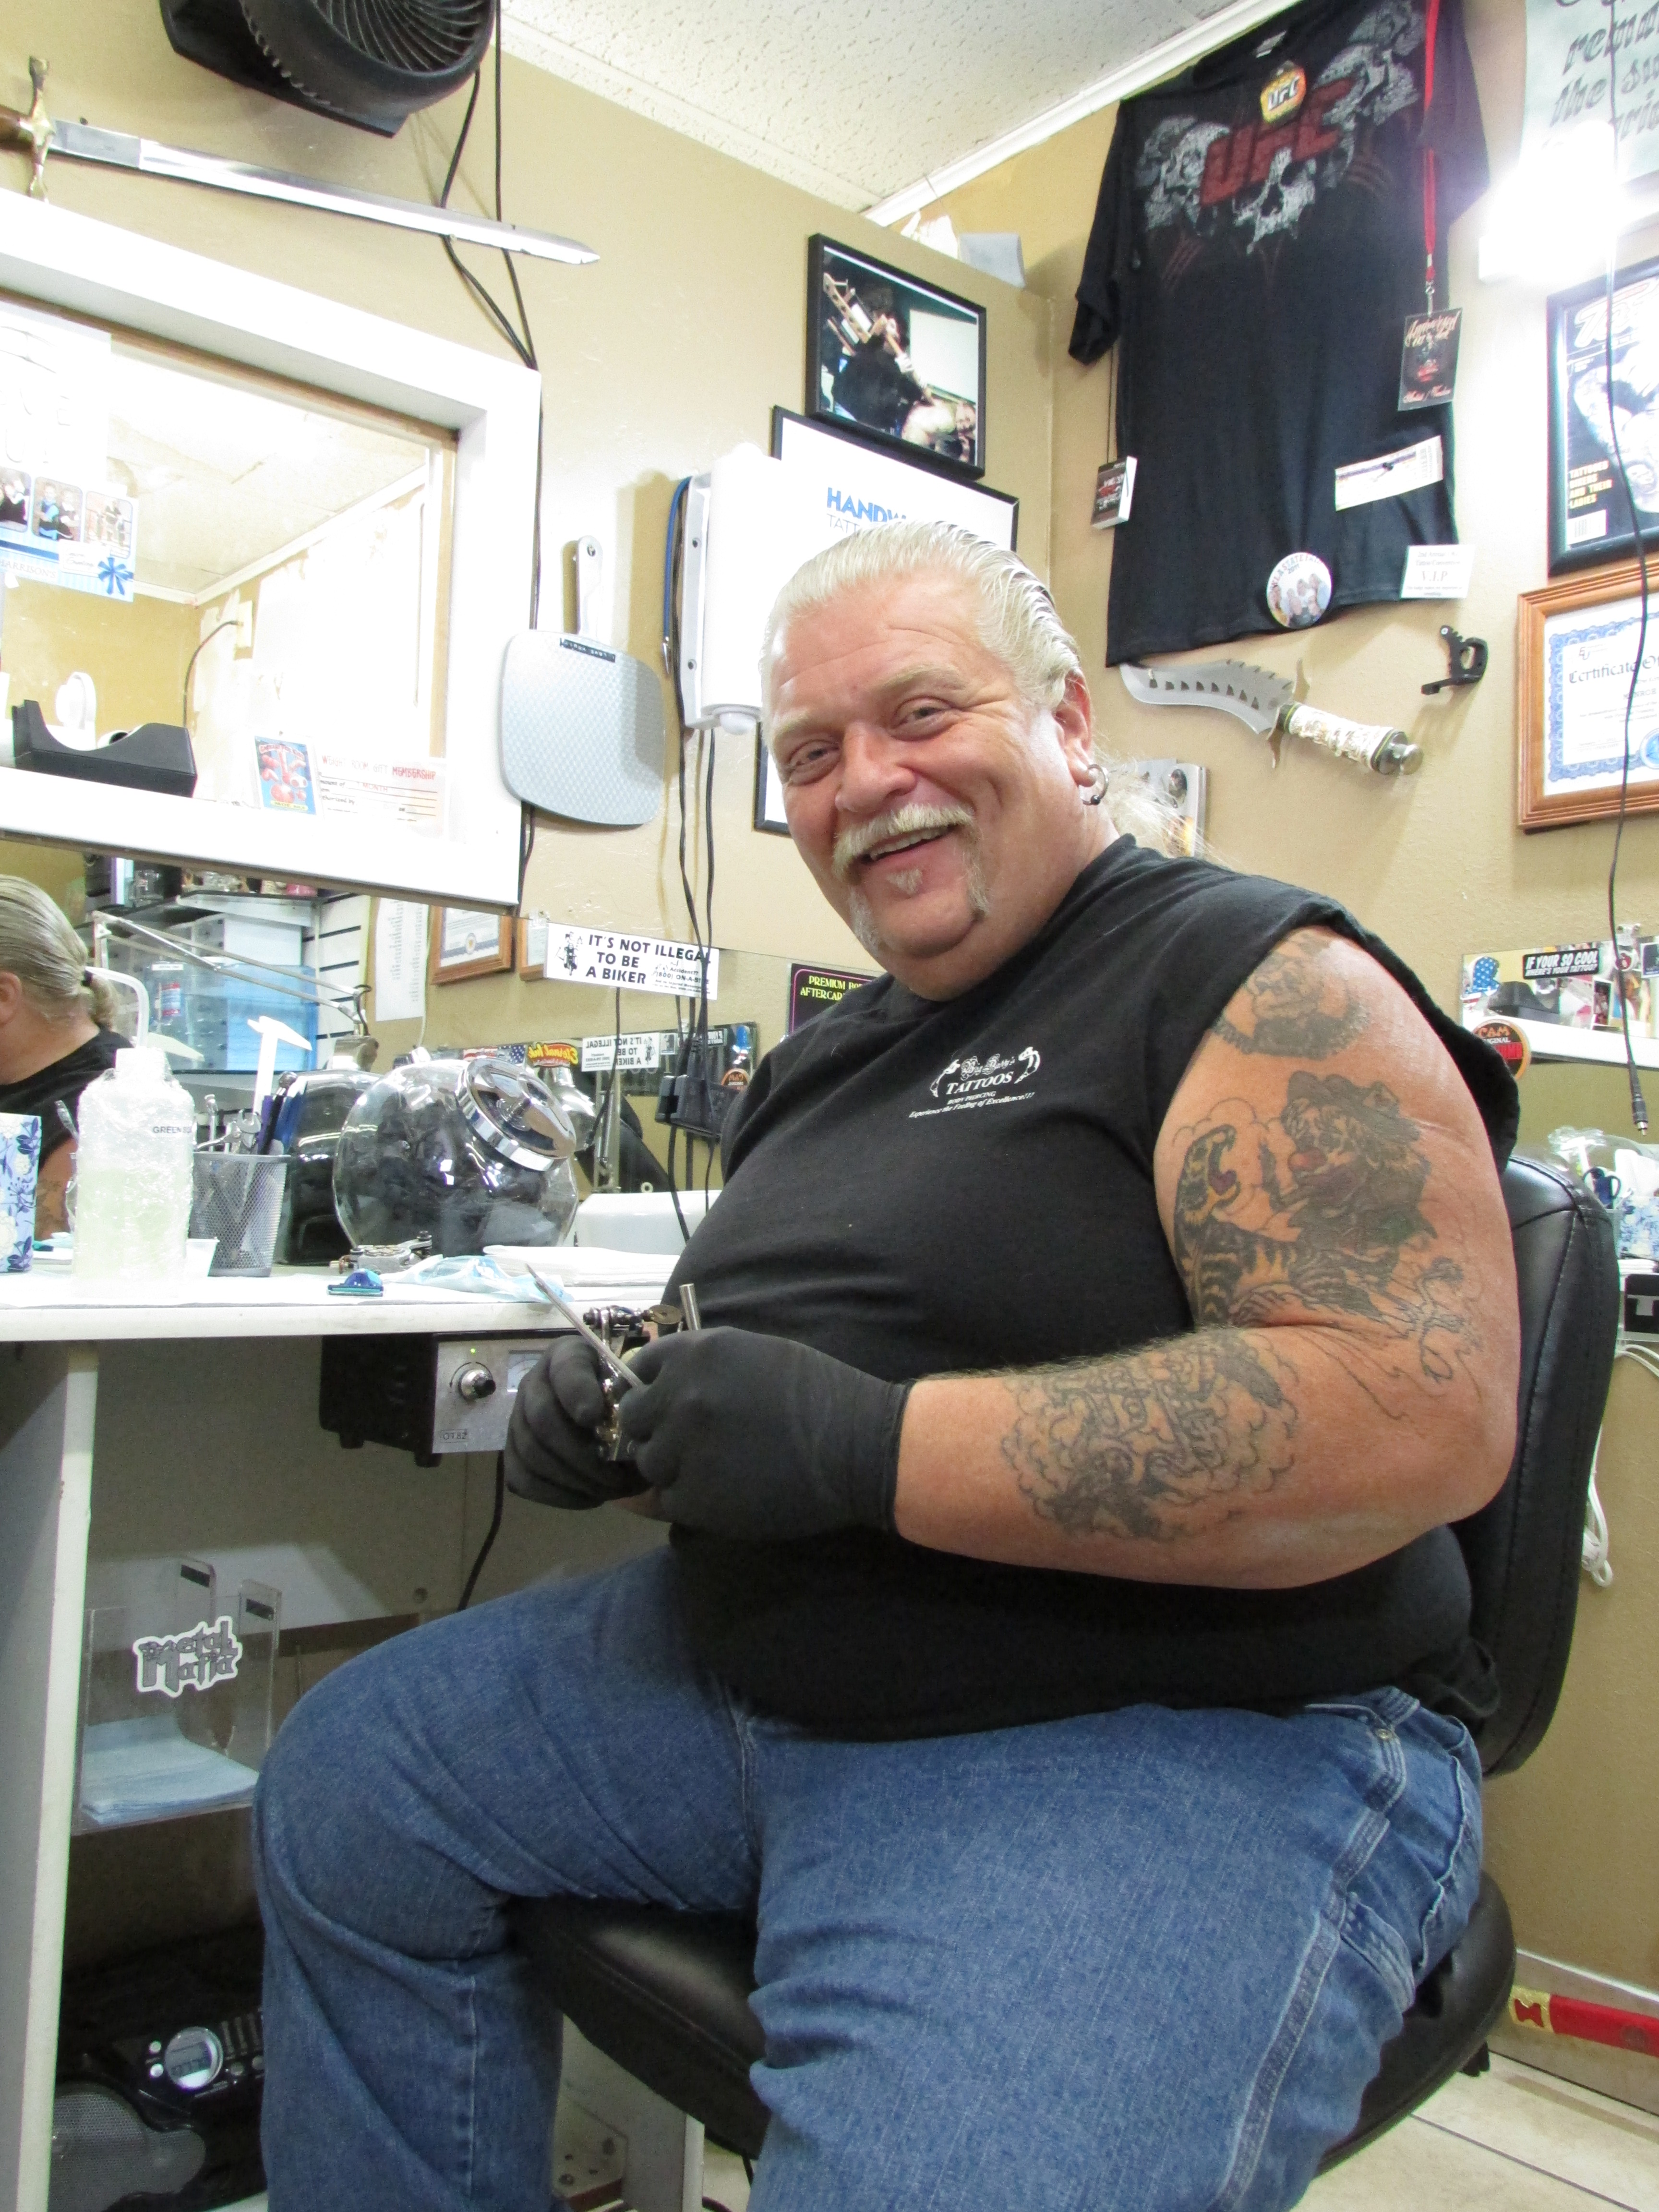 meet the artists of big daddy s tattoos and see the tattoo artistry